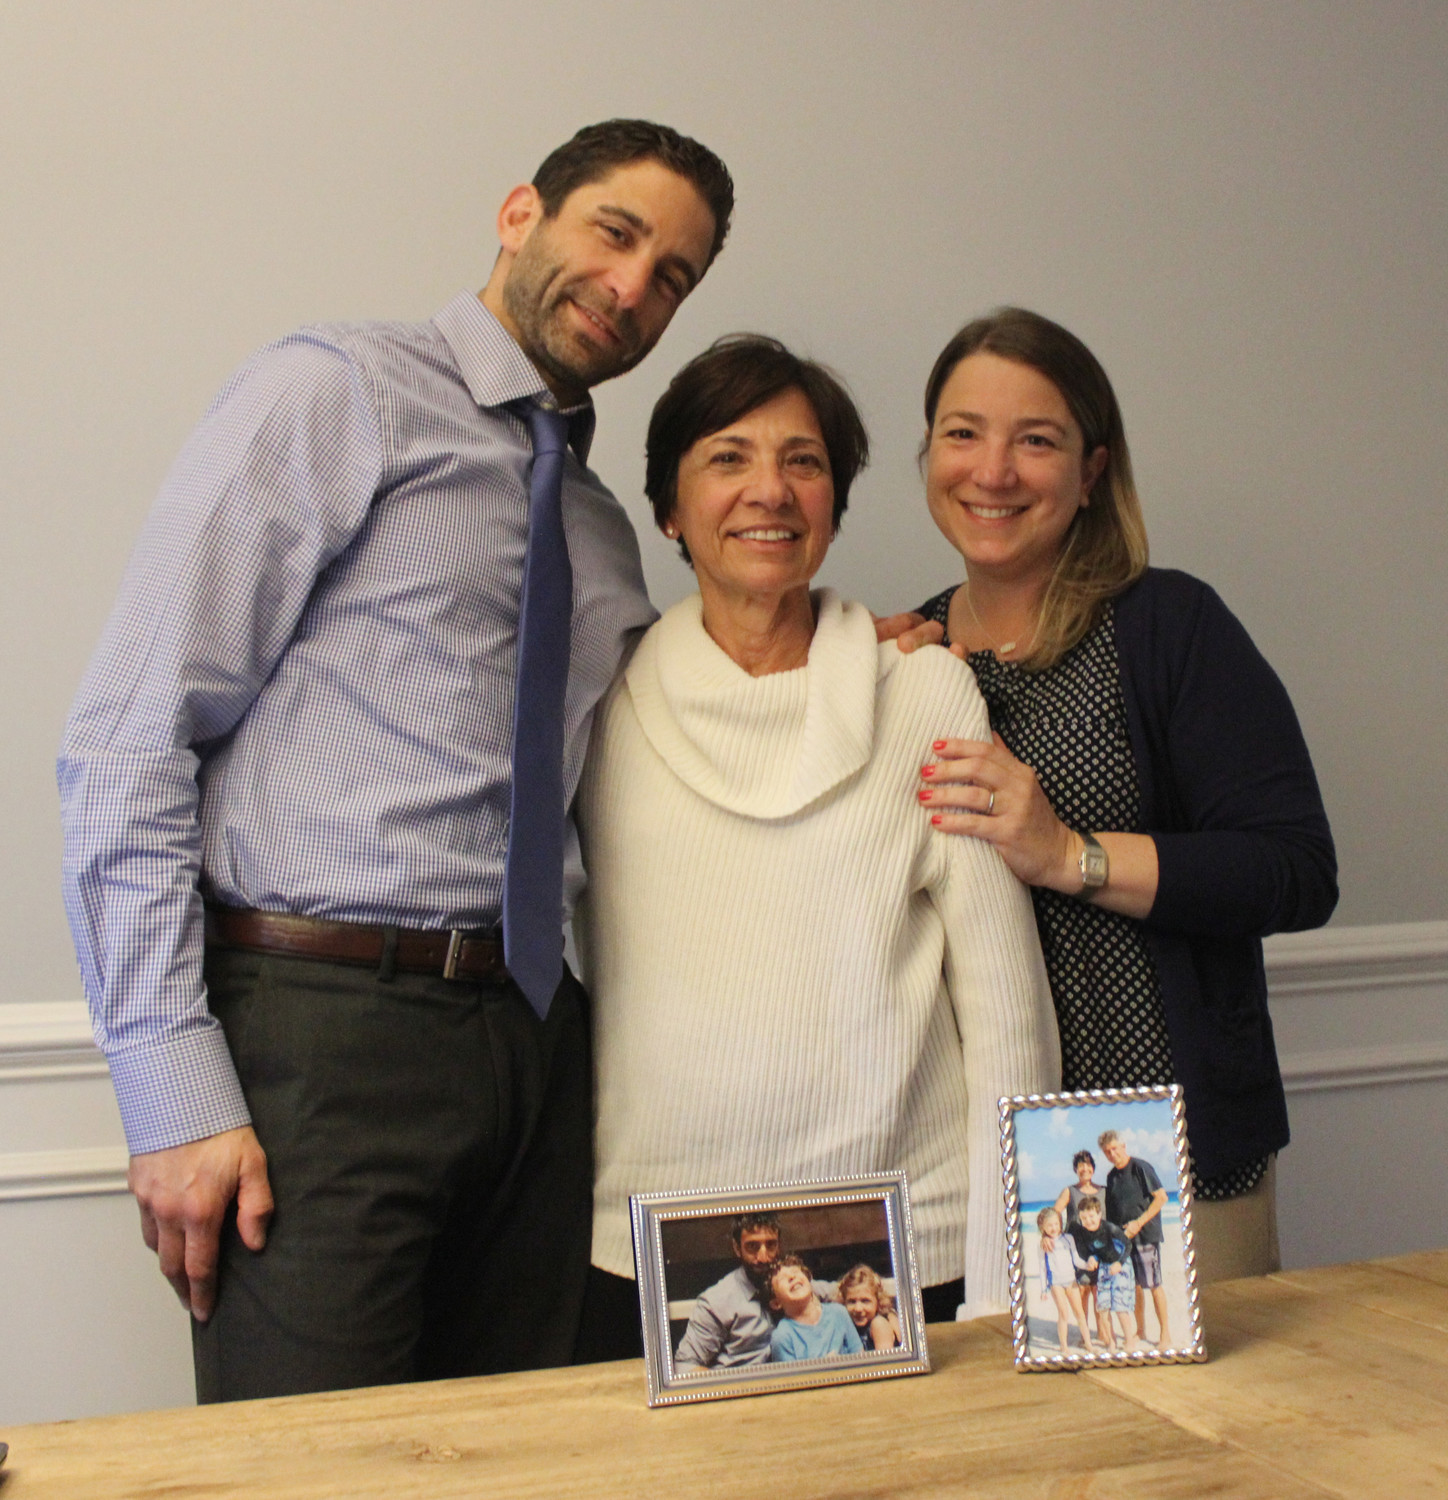 Rena Riccardi's family is committed to helping her battling amyotrophic lateral sclerosis, which was diagnosed in February 2017. Her son, Christopher, the chairman of mathematics at Mepham High School, and her daughter, Aubrey Riccardi Wickersham, a Merrick resident and a partner at Goldberg Weprin Finkel Goldstein LLP, spoke to the Herald about her progress.